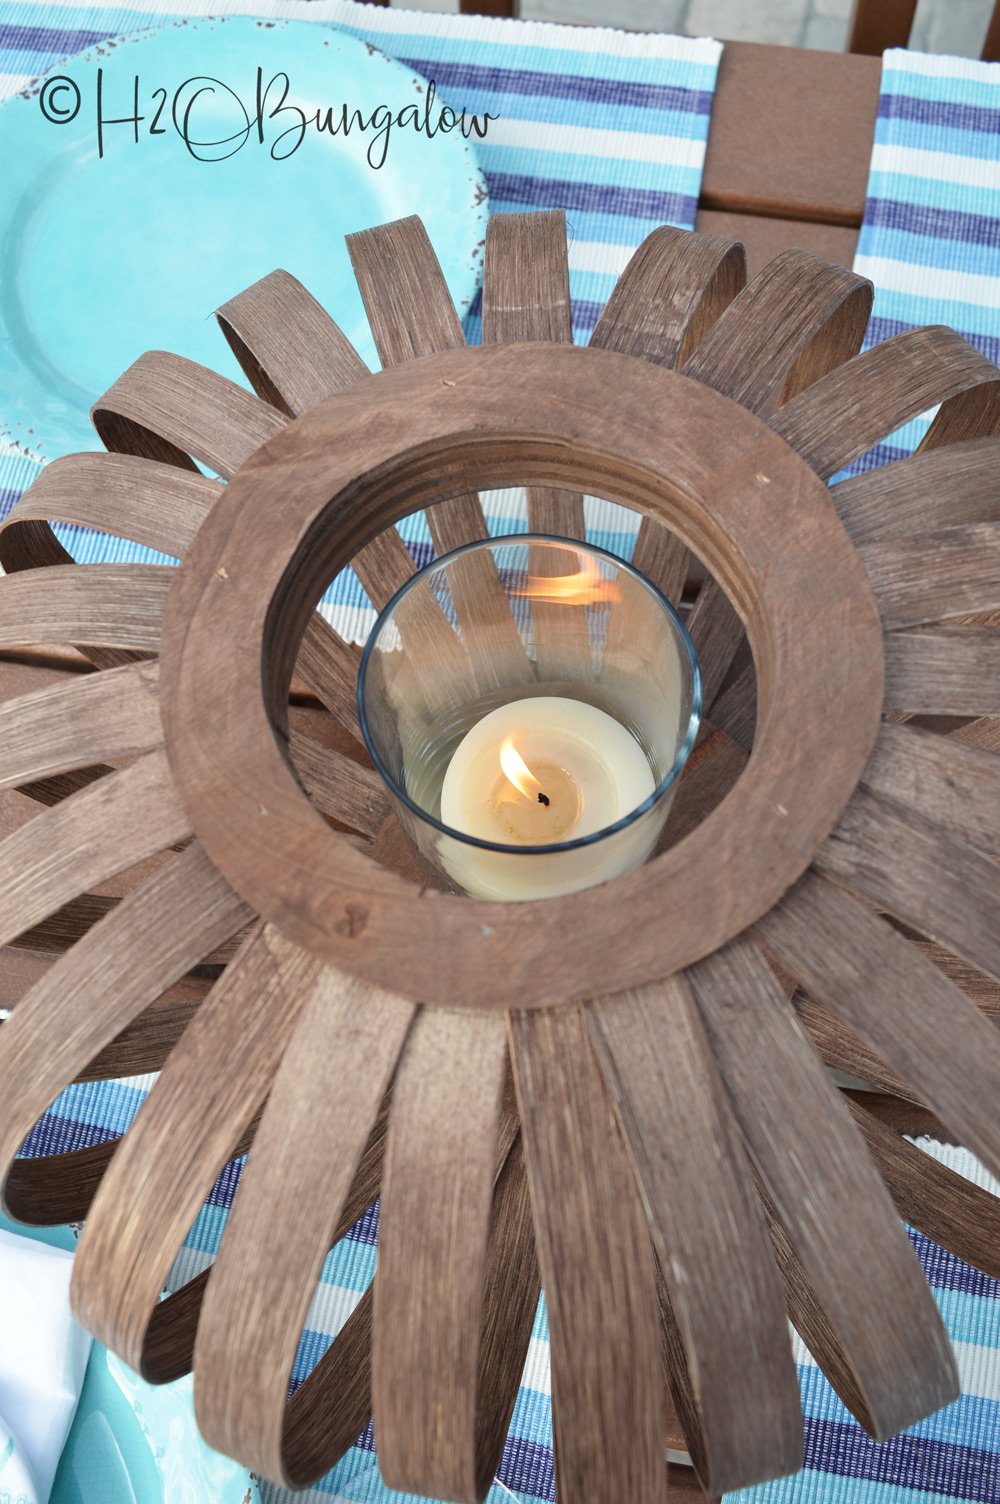 Make an upscale DIY wooden lantern that's versatile enough to use indoors or outside. Pop in a tall glass candle holder and candle or use an LED candle, either one fit's nicely with the wide top opening. Follow this easy tutorial to make a wooden lantern or set of wooden decorative lanterns for this years summer decor.